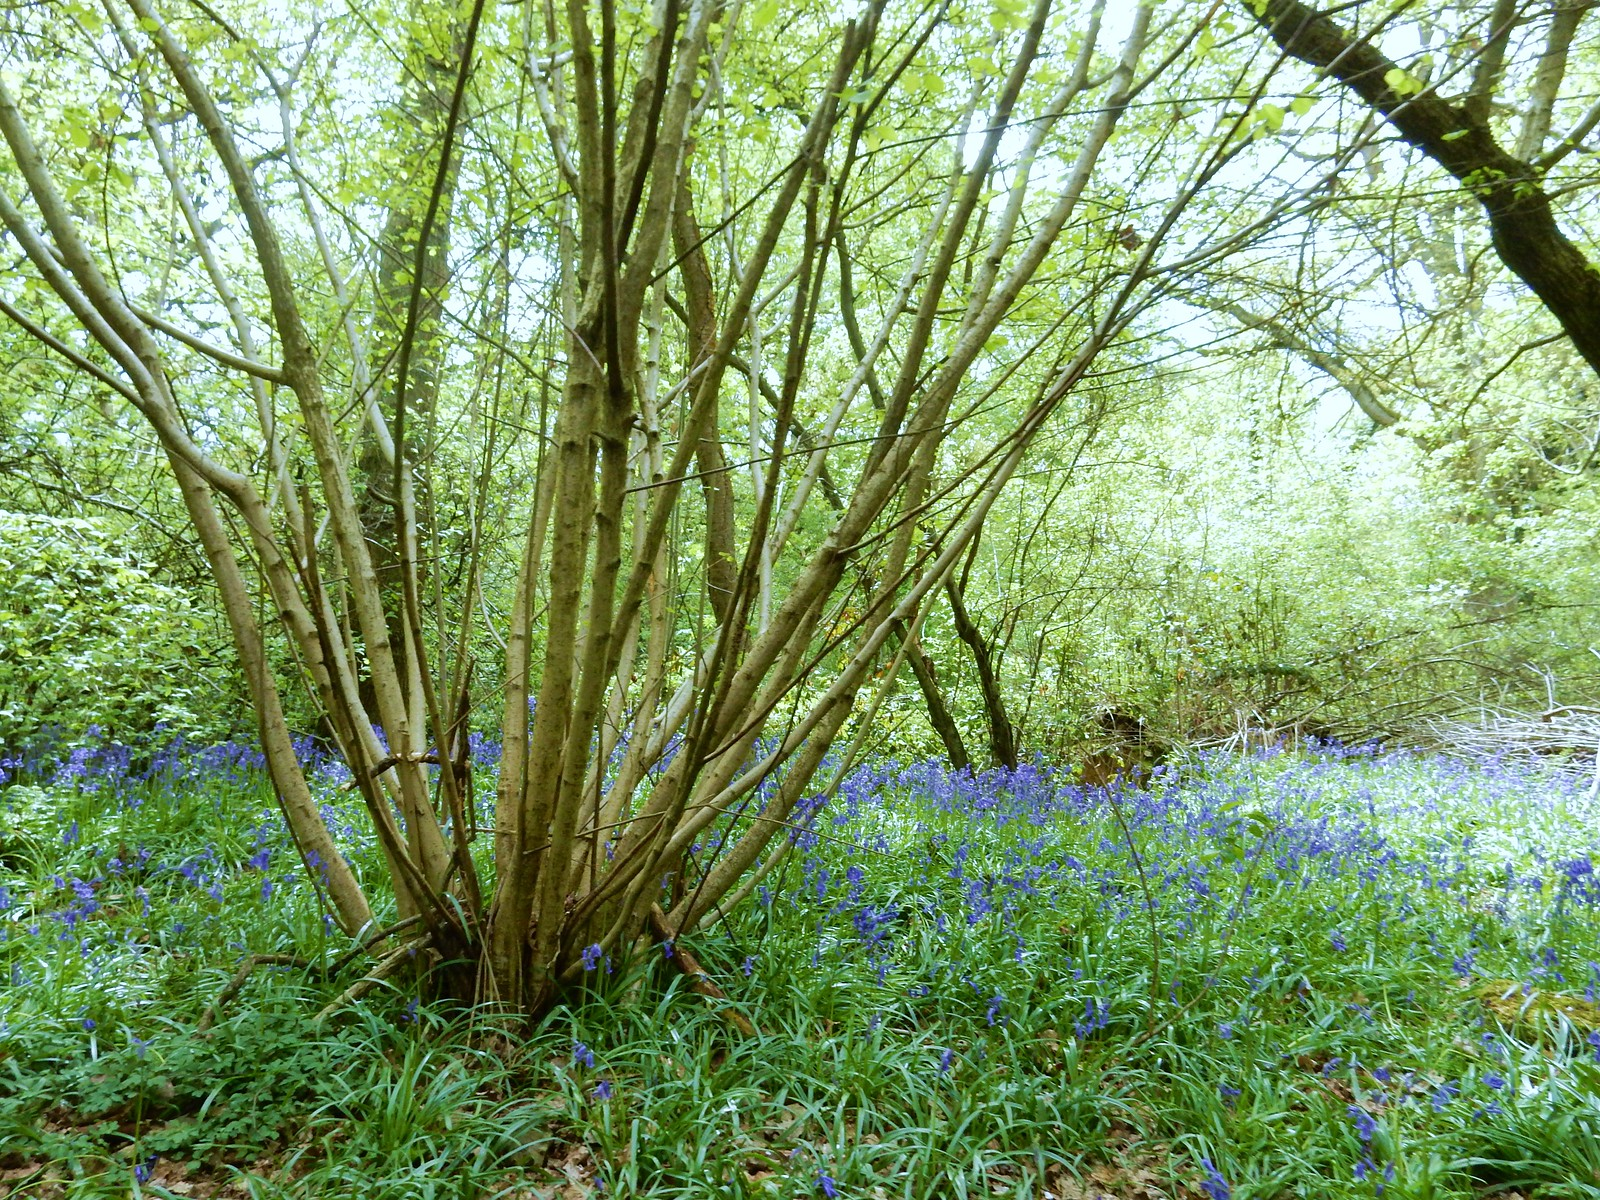 Coppice with bluebells Whyteleafe to Woldingham